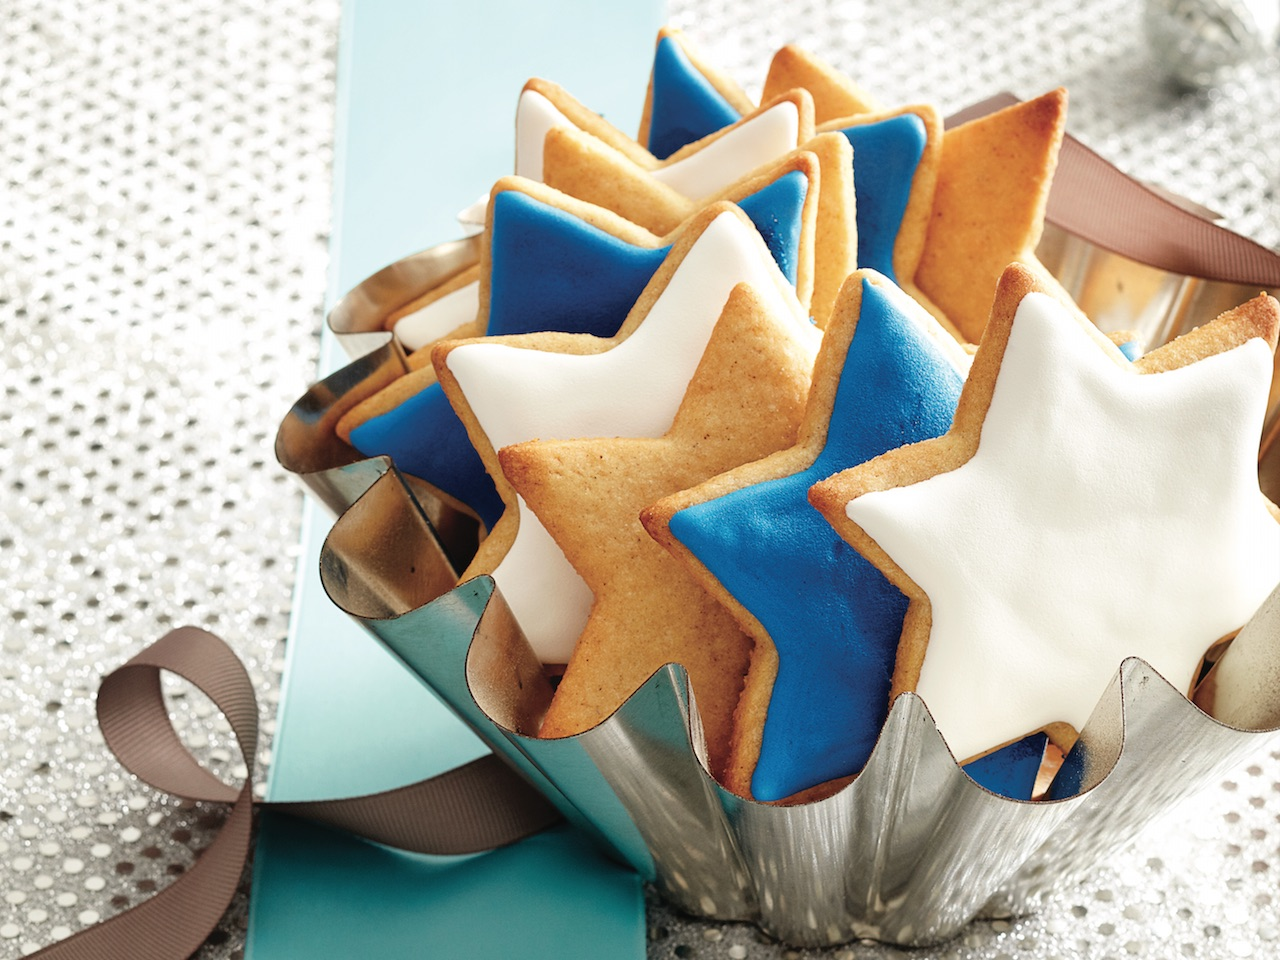 royal icing decorated start-shaped sugar cookies in a small brioche tin